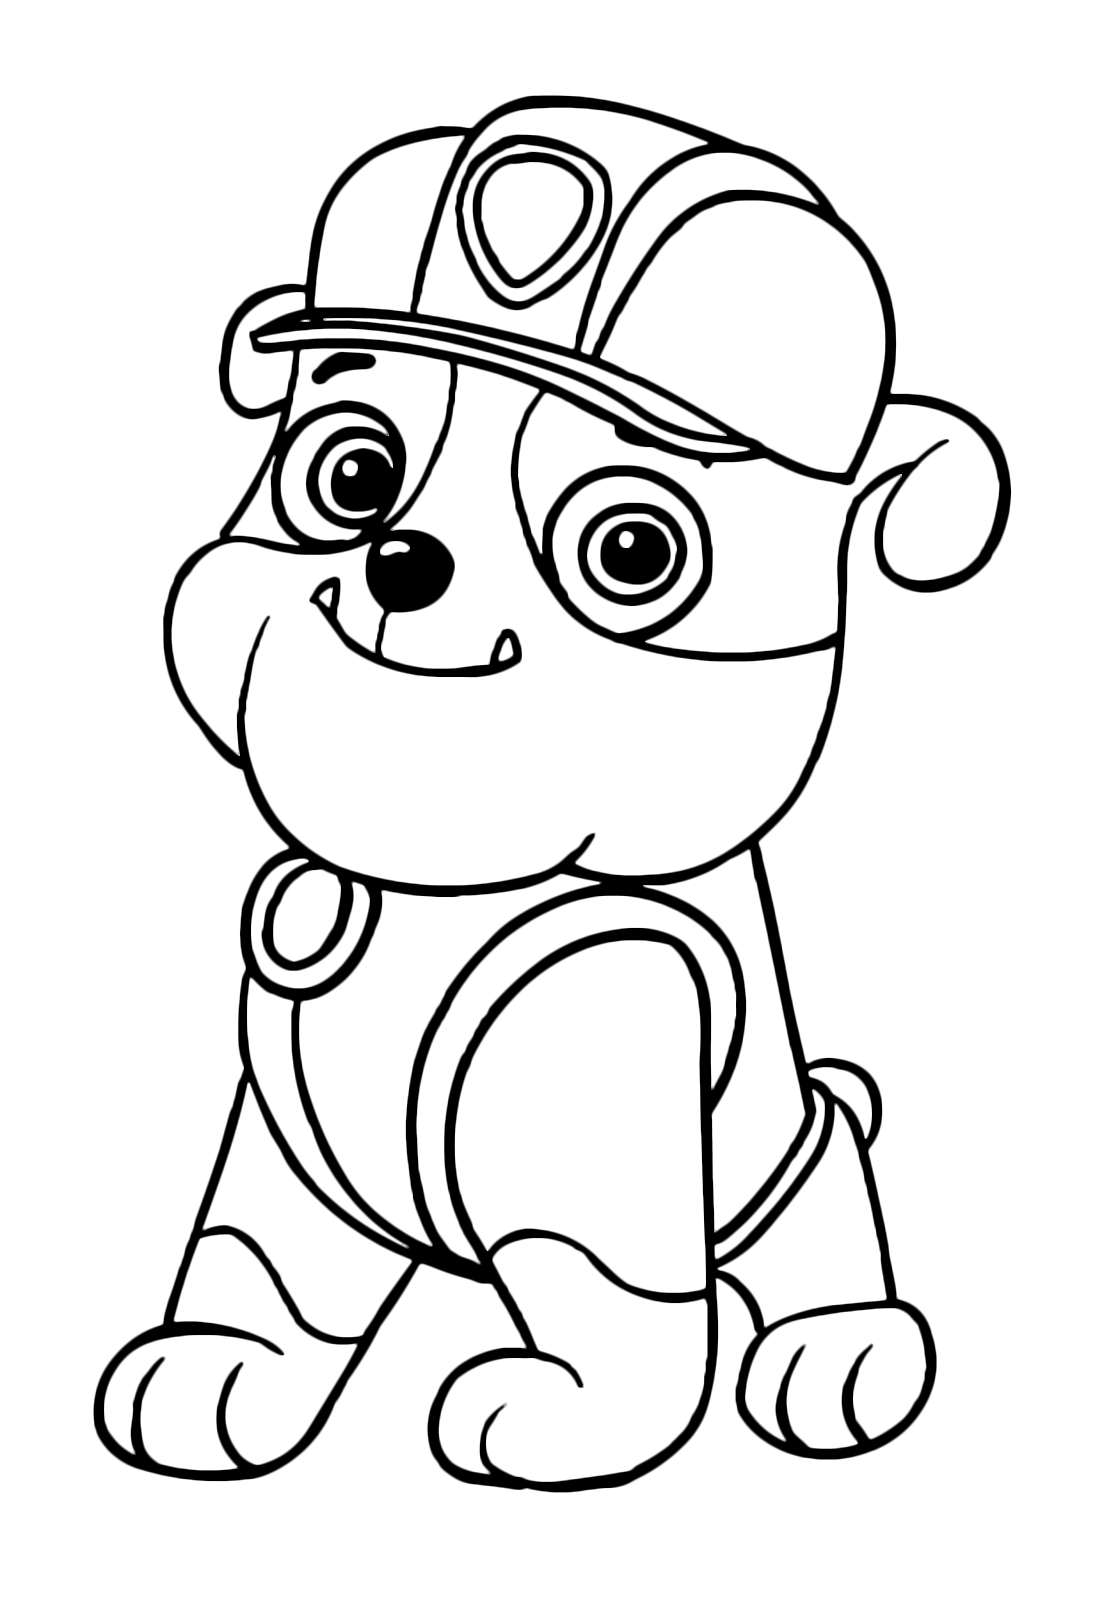 mission paw coloring pages coloriage pat patrouille mission pommes dessin paw coloring pages mission